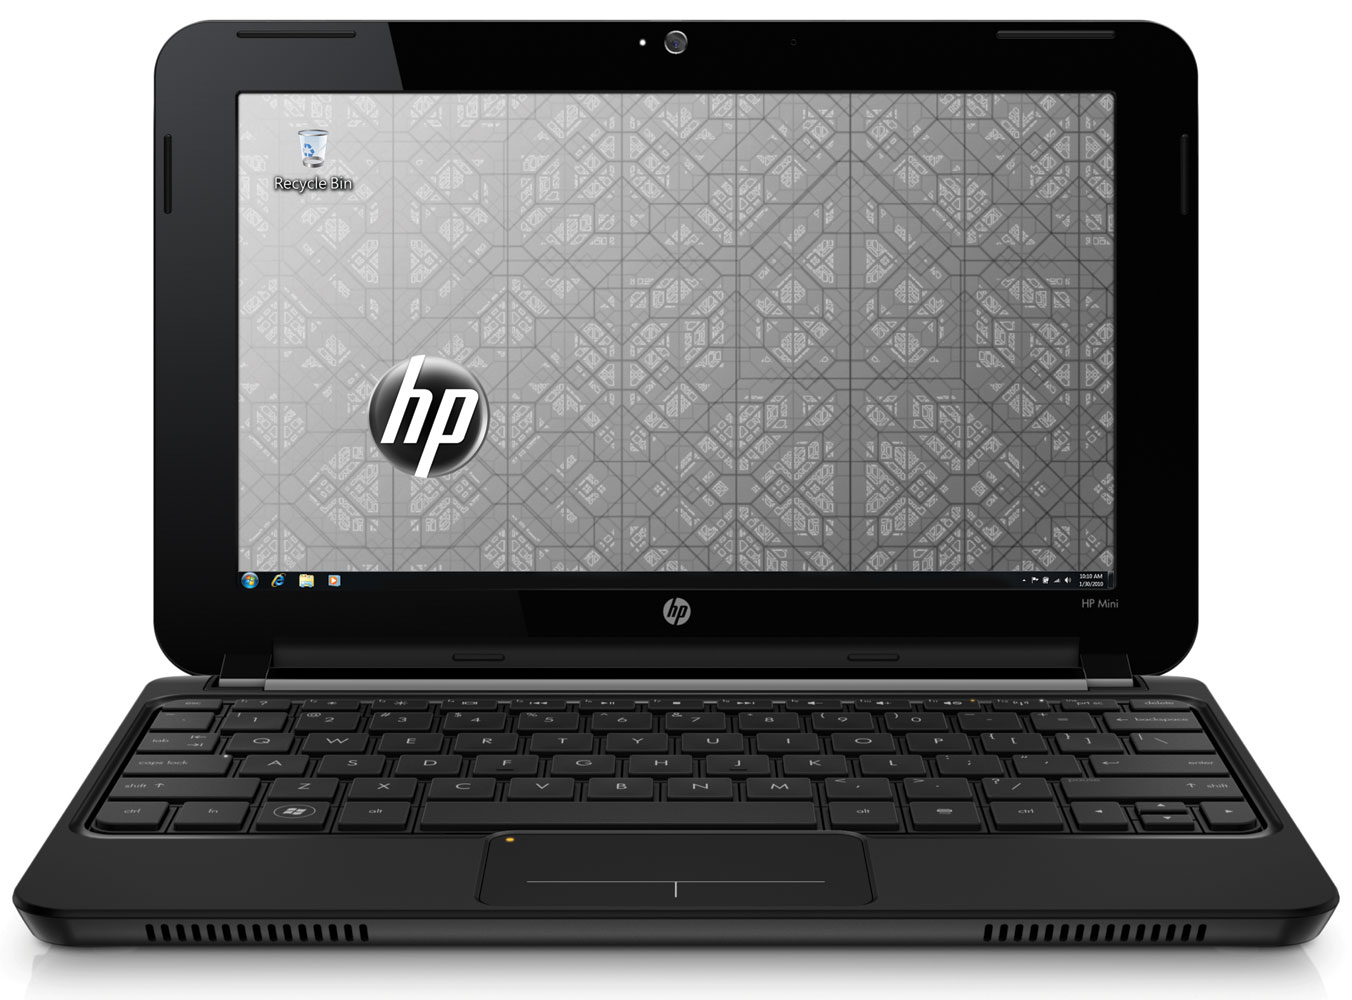 HP Mini 110-1140LA Notebook Quick Launch Buttons Linux